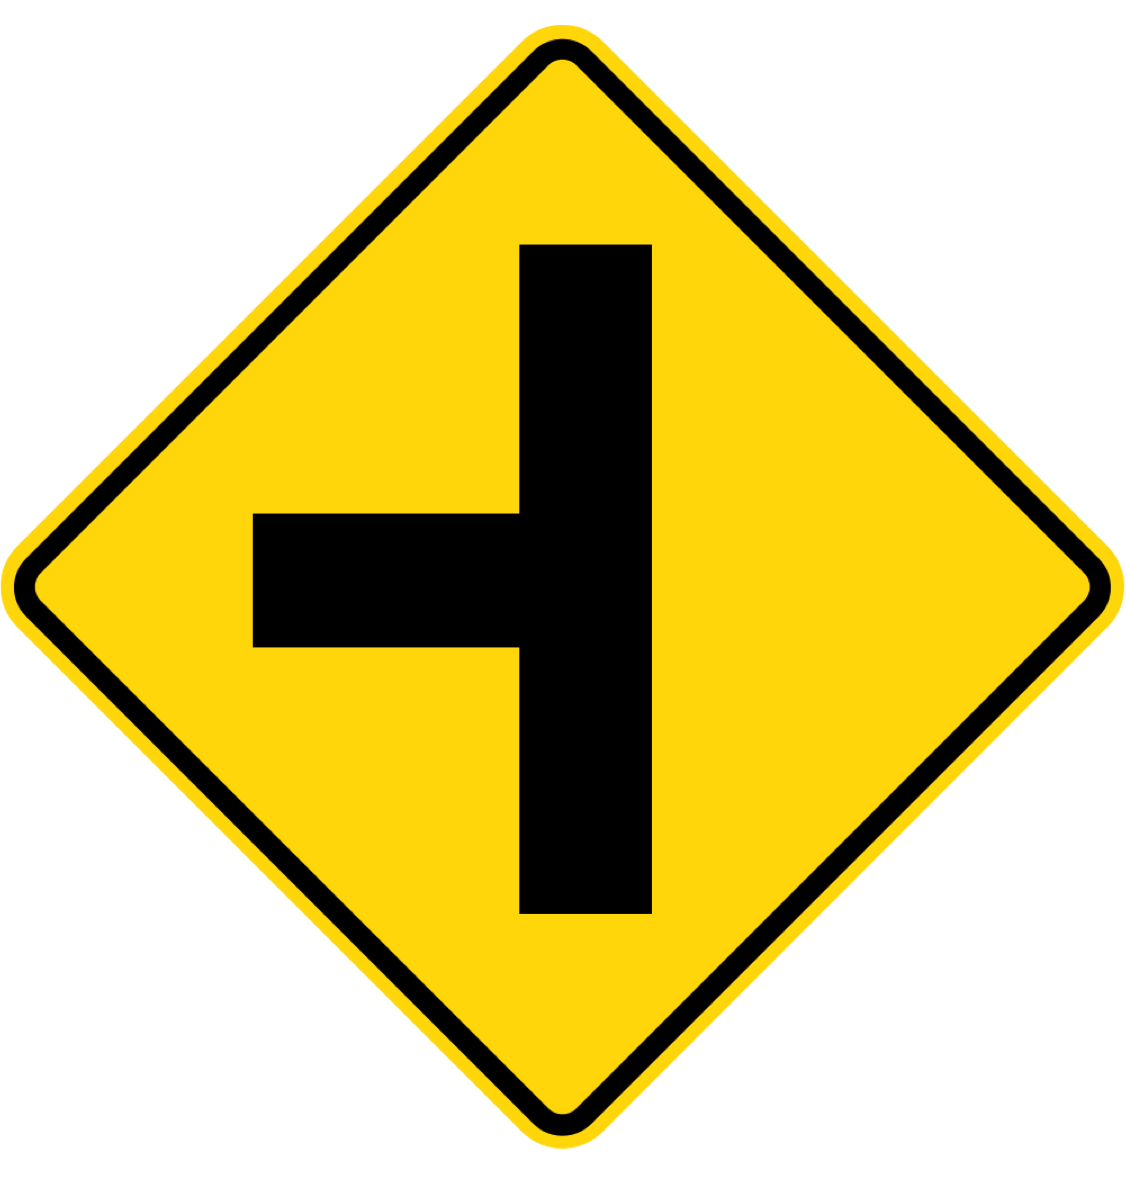 fileindonesian road sign 19bpng wikimedia commons